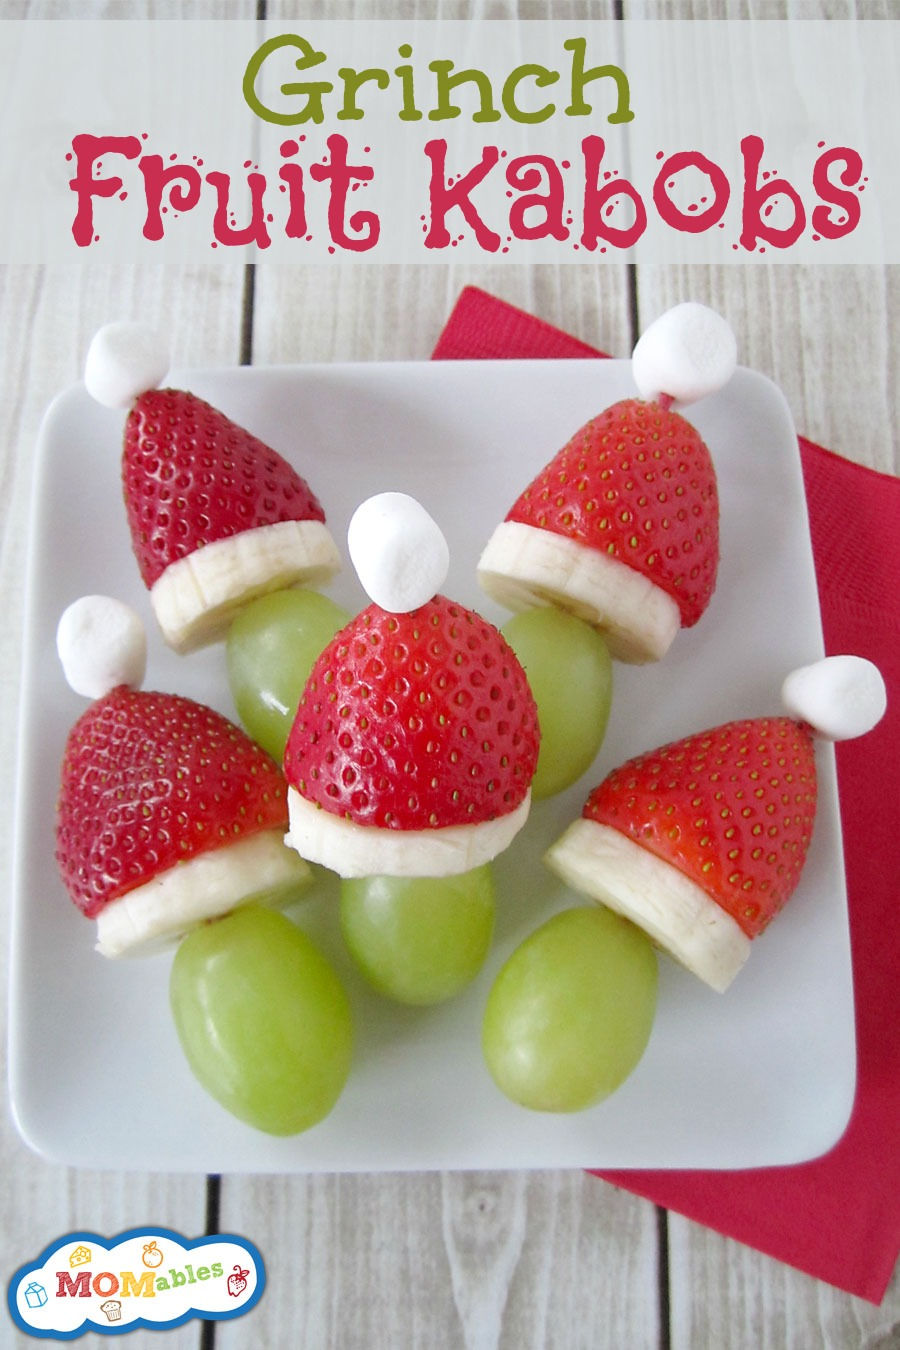 7 Fun Healthy Food Ideas For The School Party